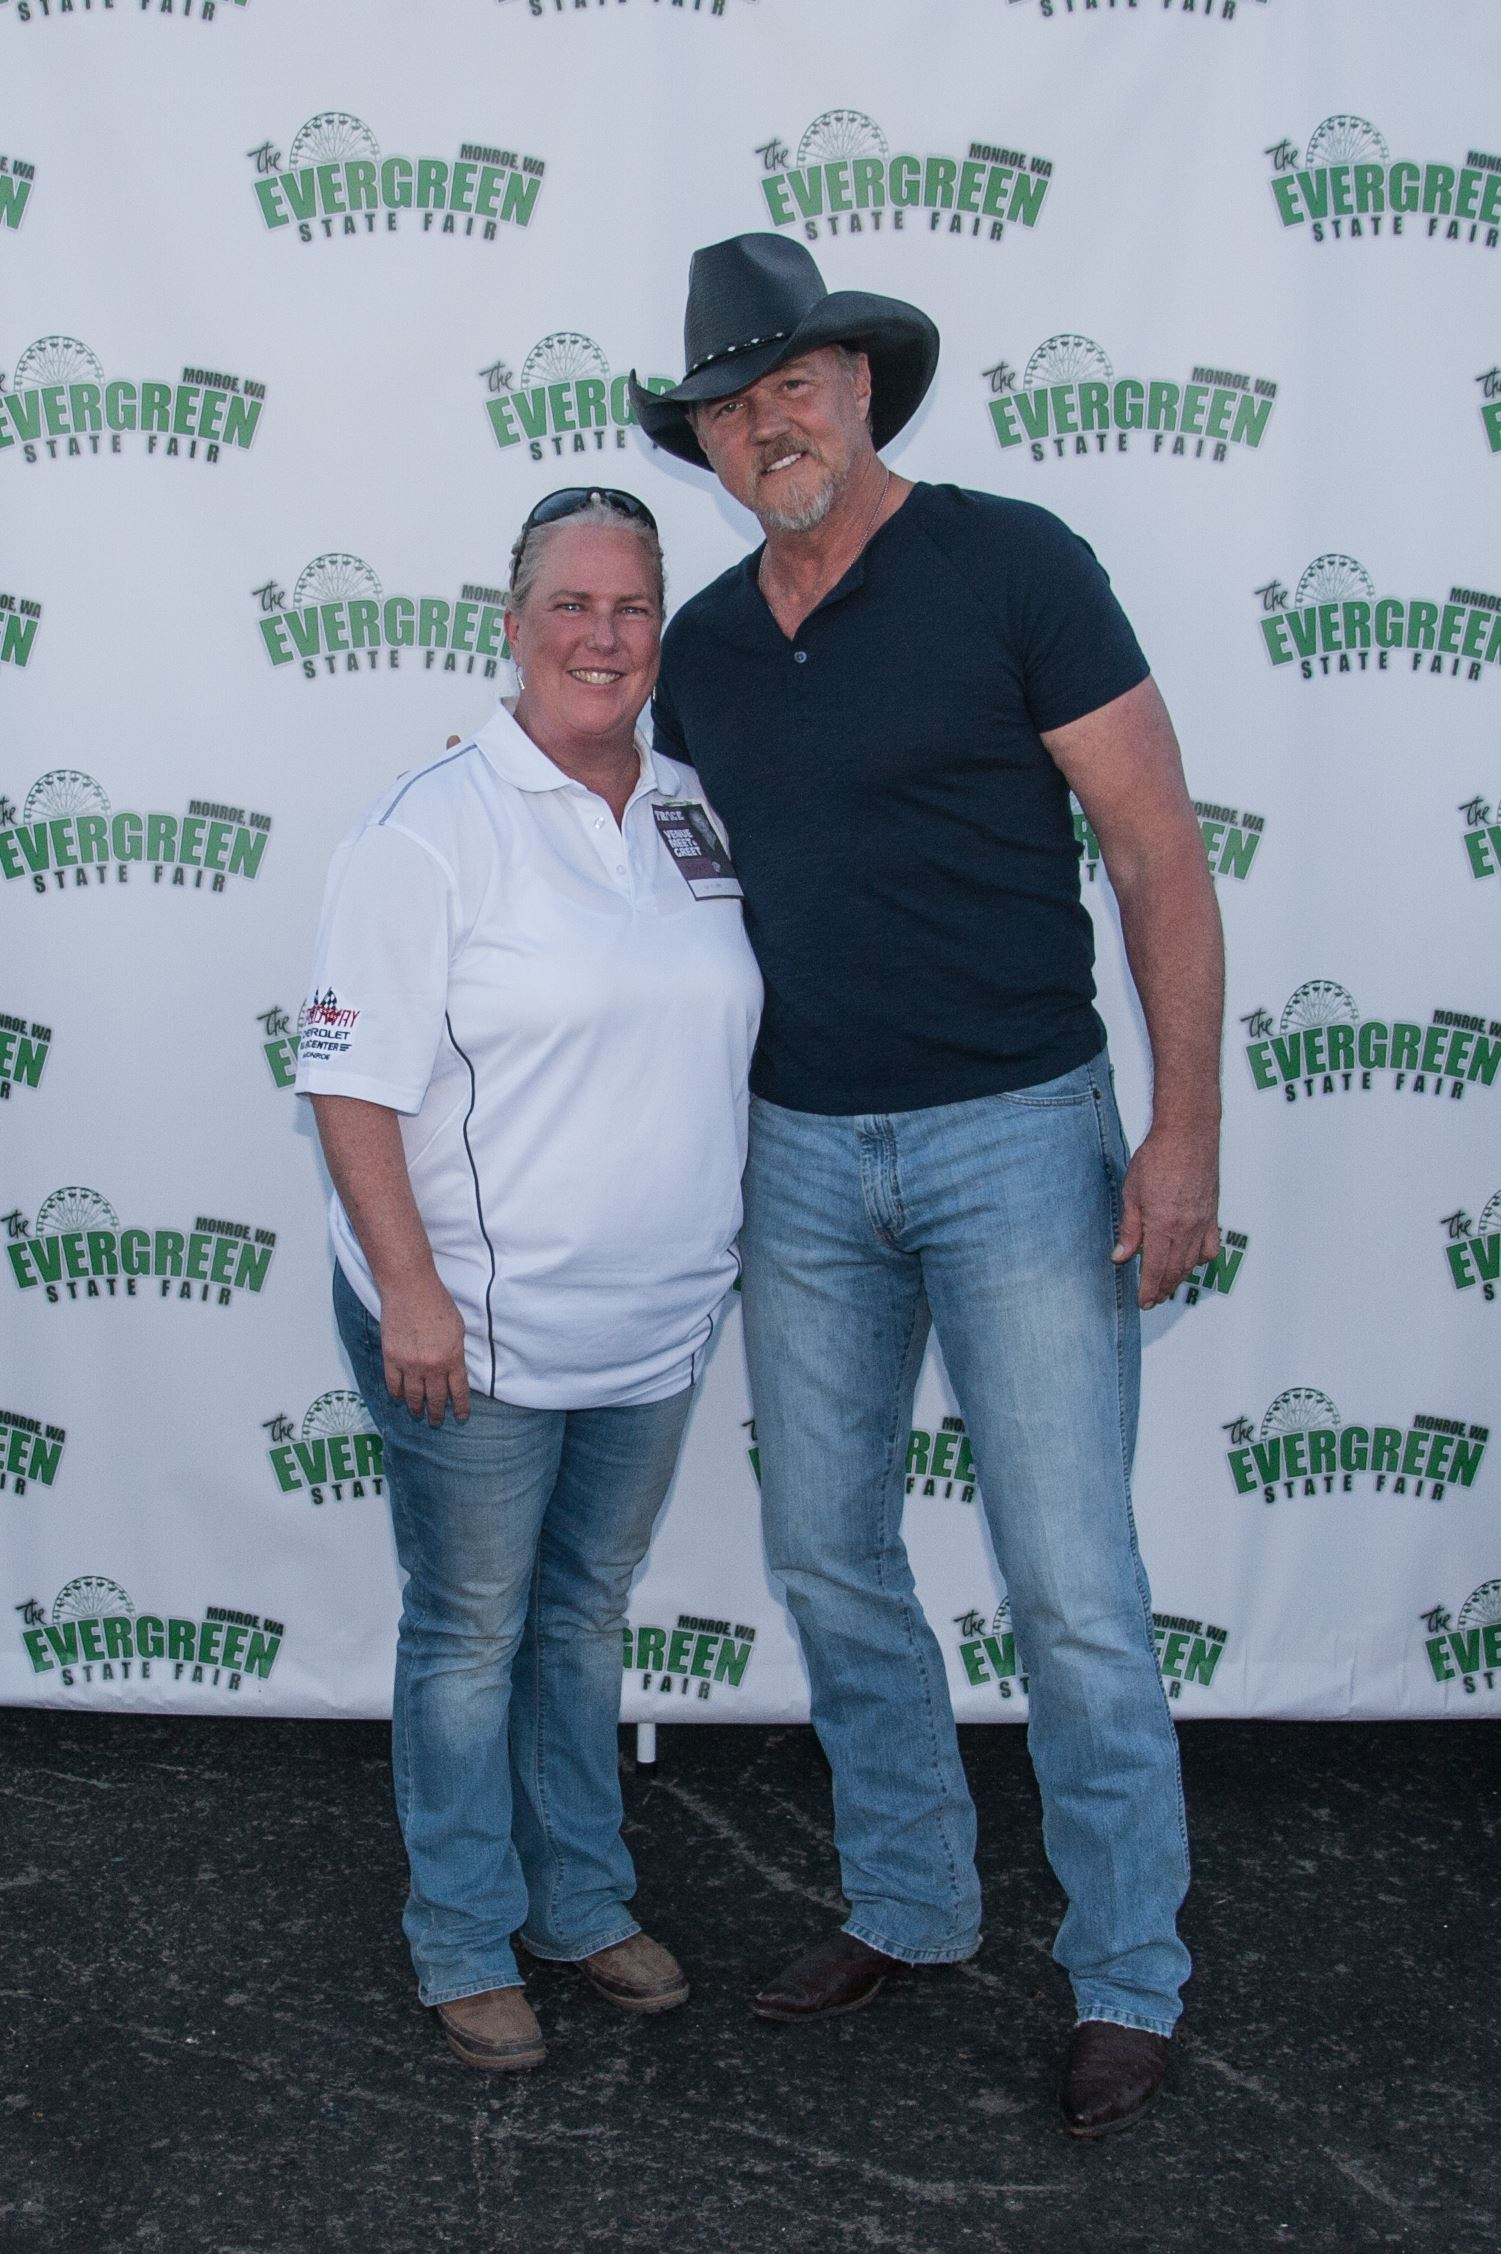 Evergreen state fairgrounds wa official website traceadkins16 kristyandbryce Choice Image